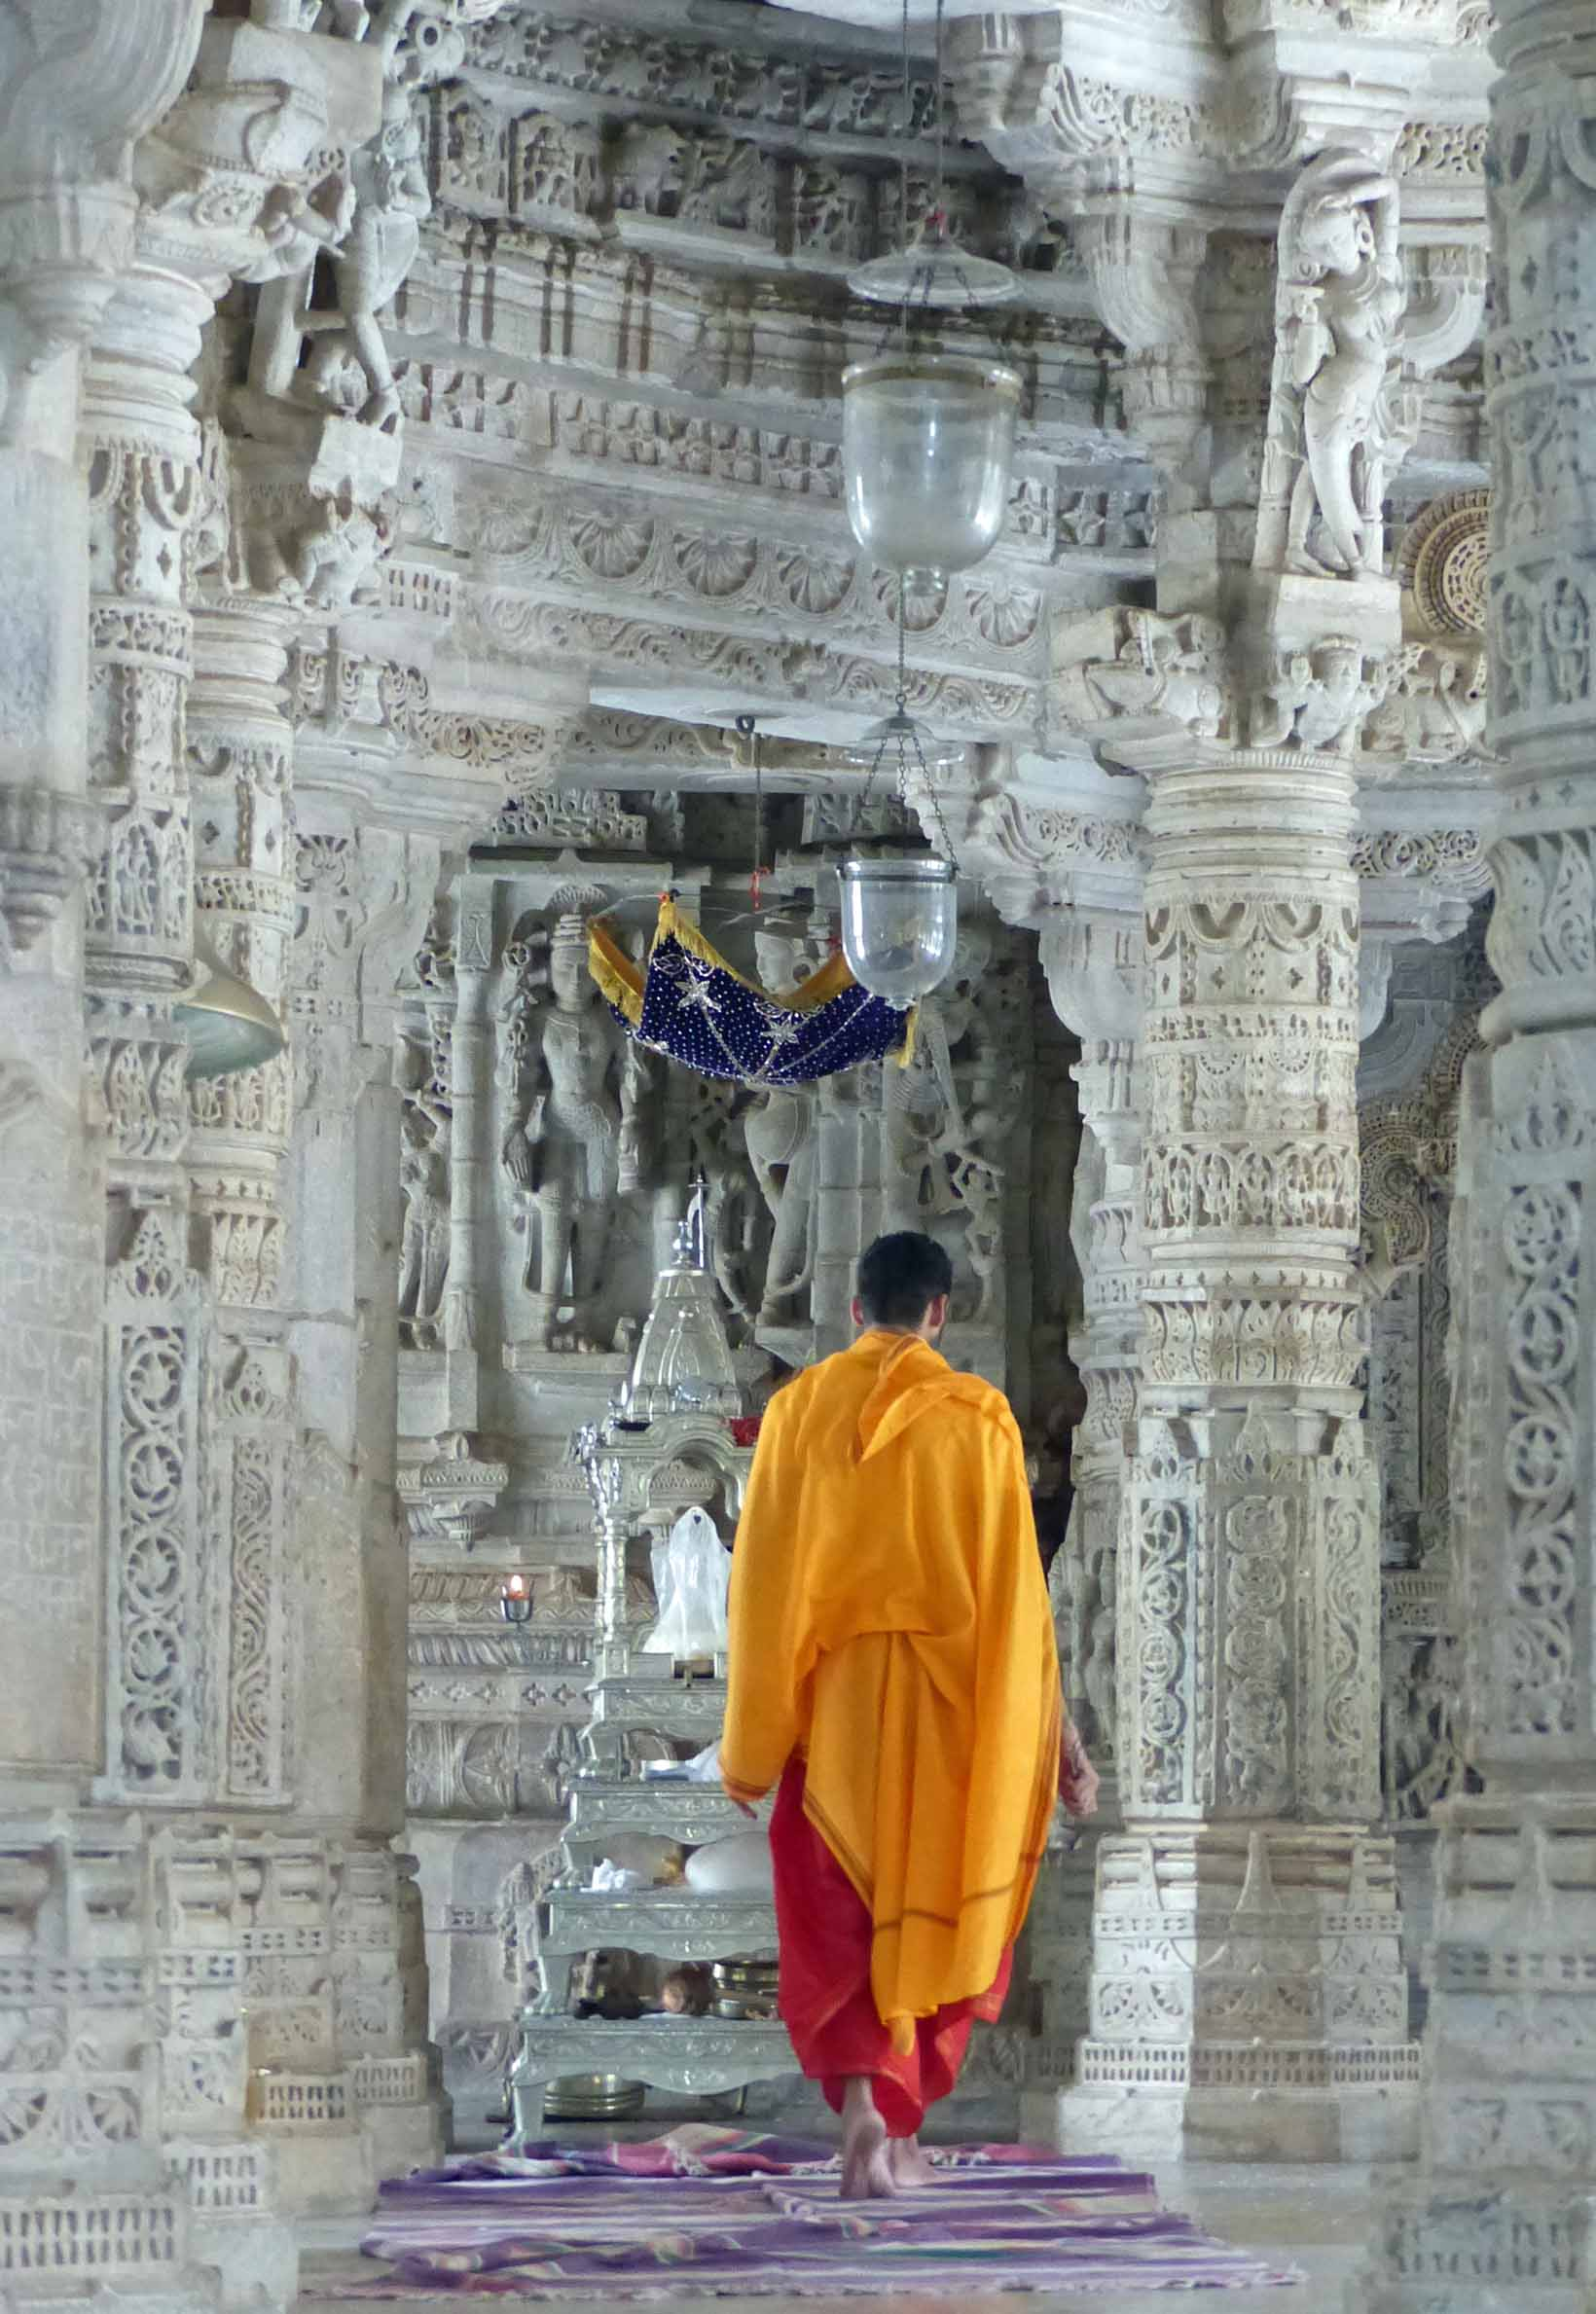 Monk in saffron robes among carved pillars